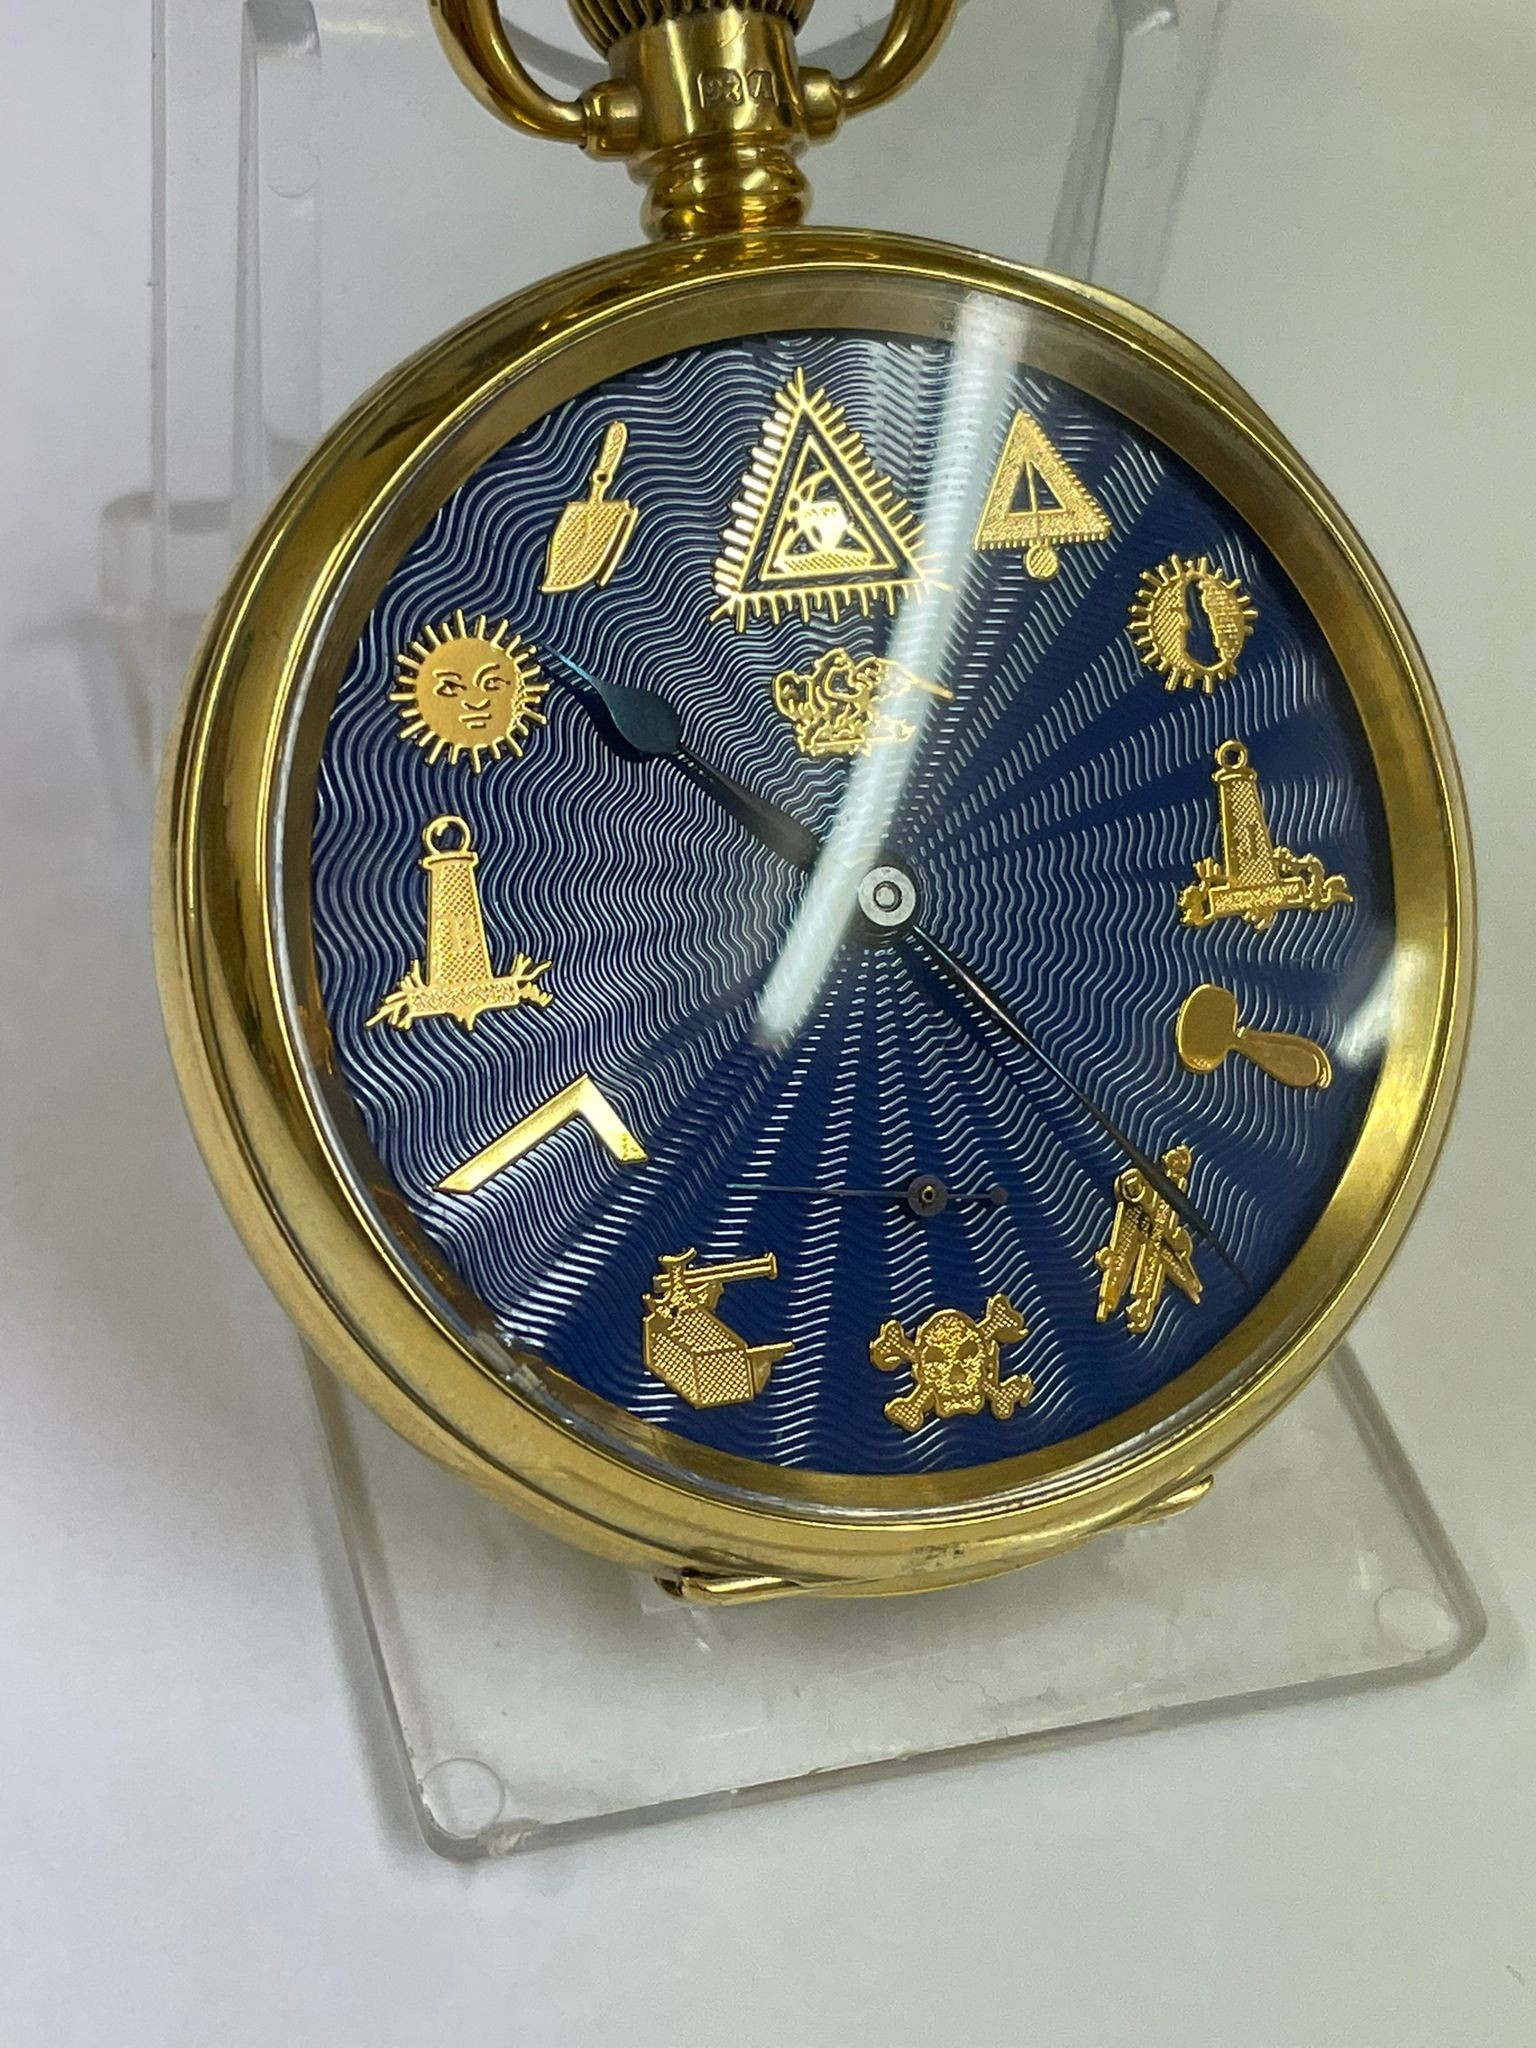 Vintage Masonic Rolex pocket watch with stand good condition and good working order but no - Image 16 of 21